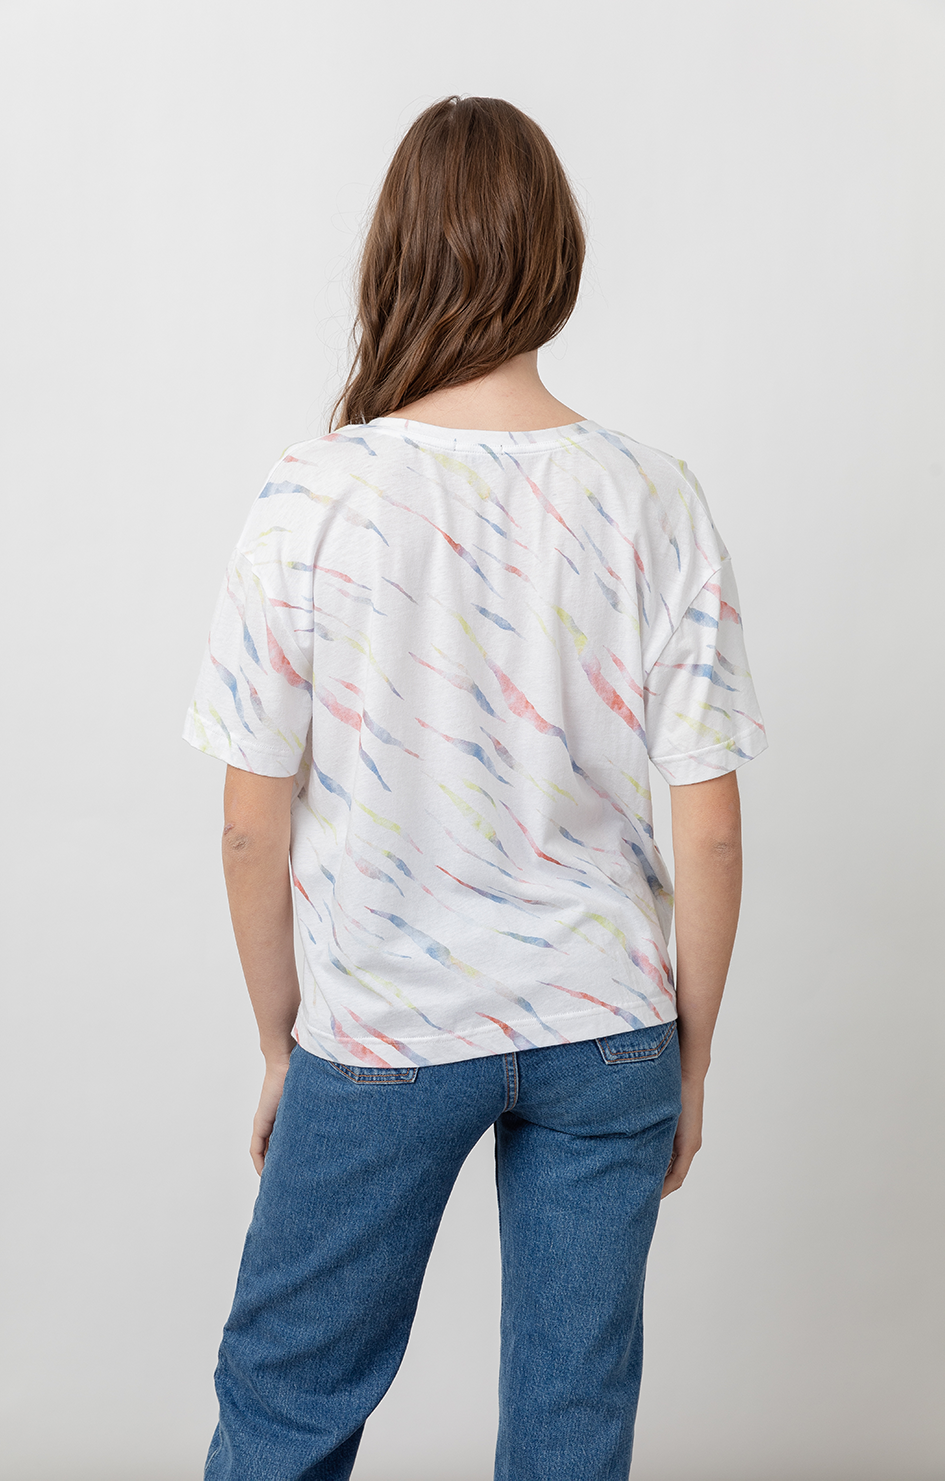 The Pocket V Tee - White Rainbow Tiger